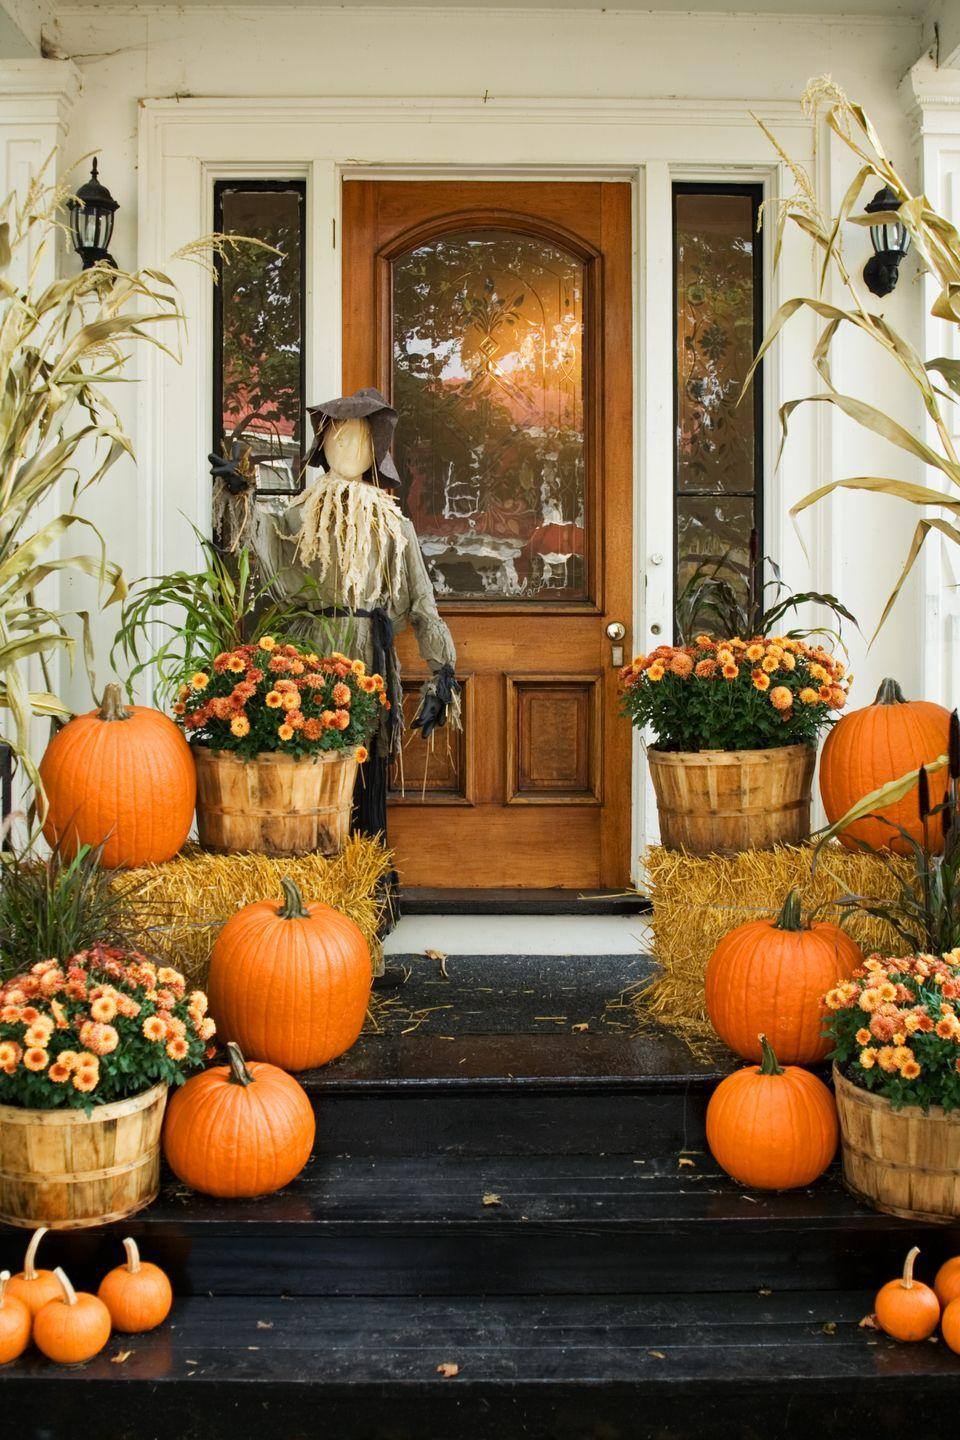 """<p>Try an easy <a href=""""https://www.oprahmag.com/life/g28190402/diy-halloween-decorations/"""" rel=""""nofollow noopener"""" target=""""_blank"""" data-ylk=""""slk:Halloween DIY"""" class=""""link rapid-noclick-resp"""">Halloween DIY</a> to make your home look inviting. Or, if you're not into the holiday, simply lean into a pumpkin motif.</p>"""